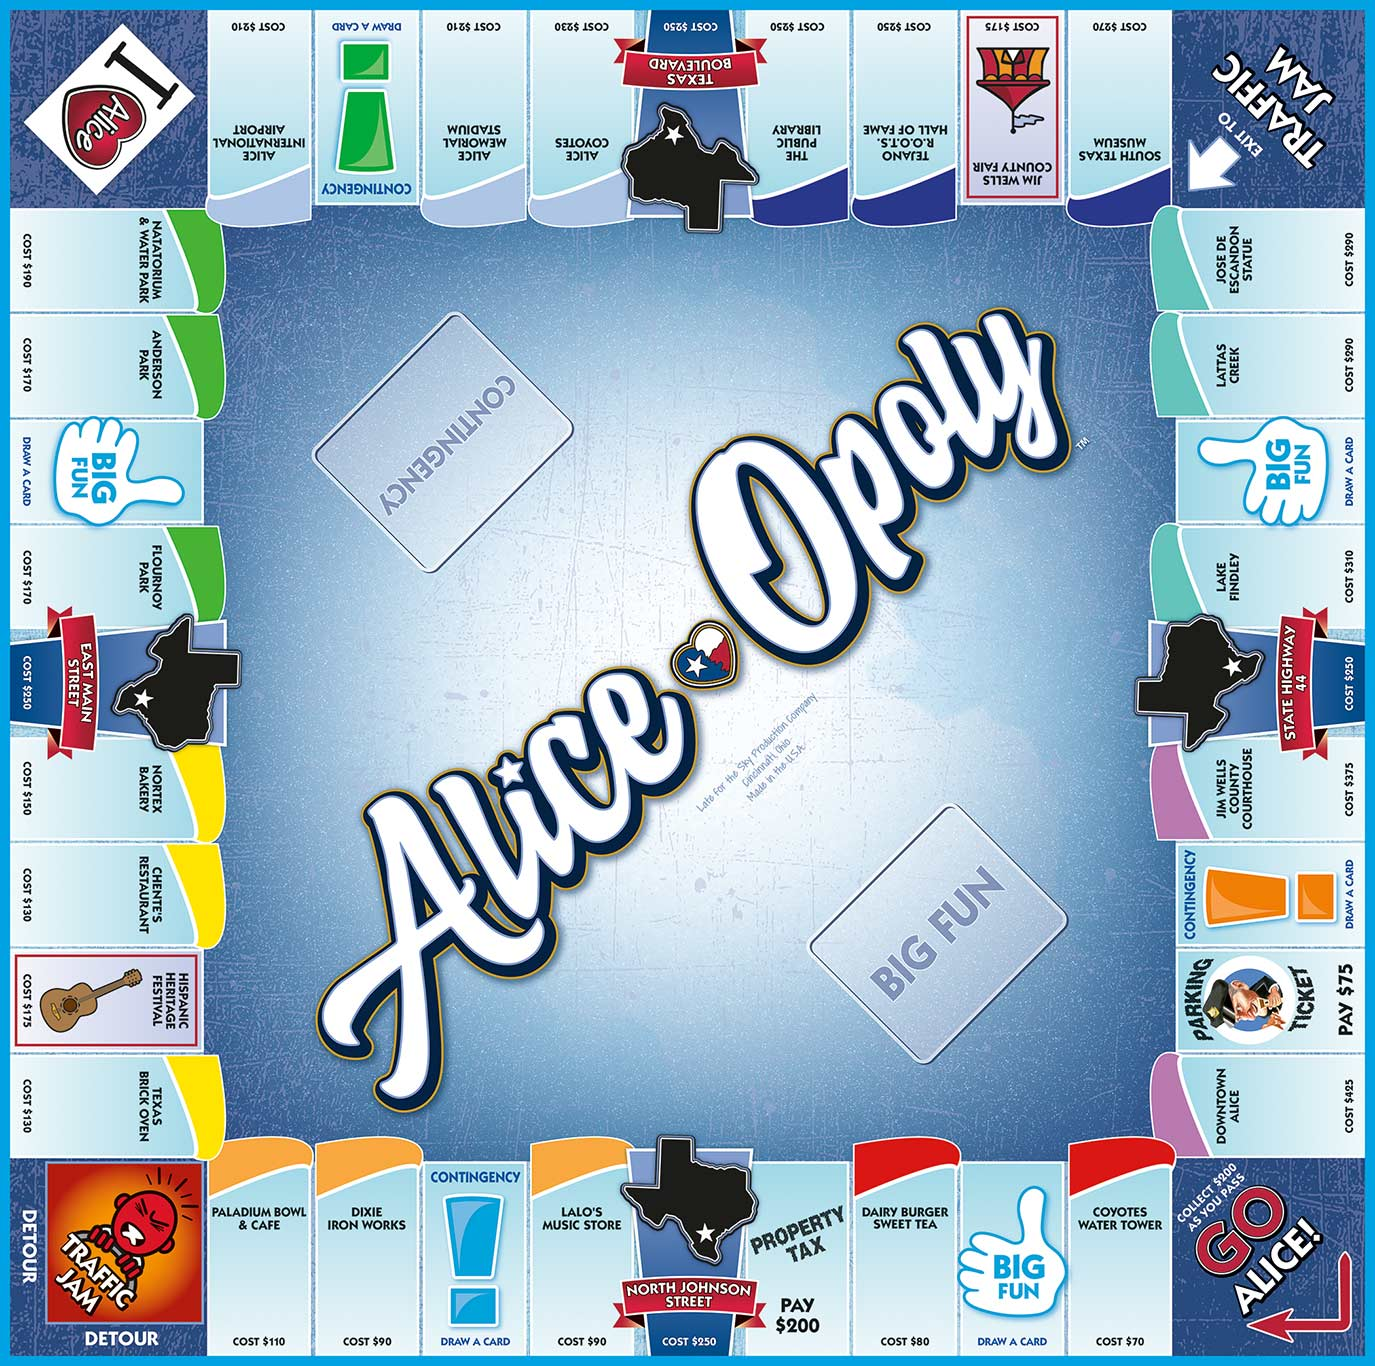 ALICE-OPOLY Board Game